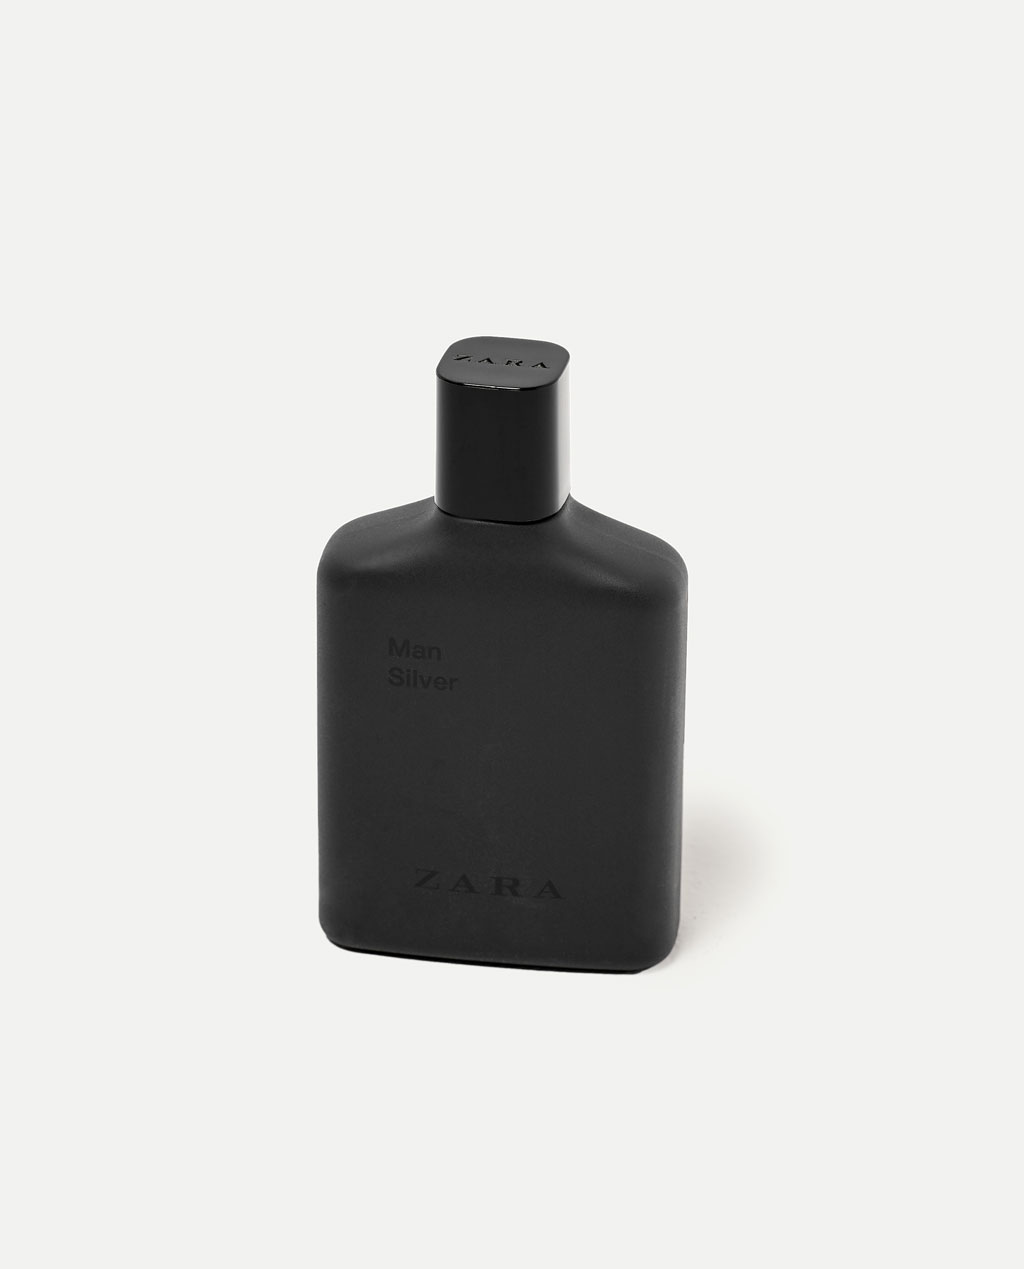 Man Silver Zara Cologne A New Fragrance For Men 2017 Gucci Gulity Black Pictures